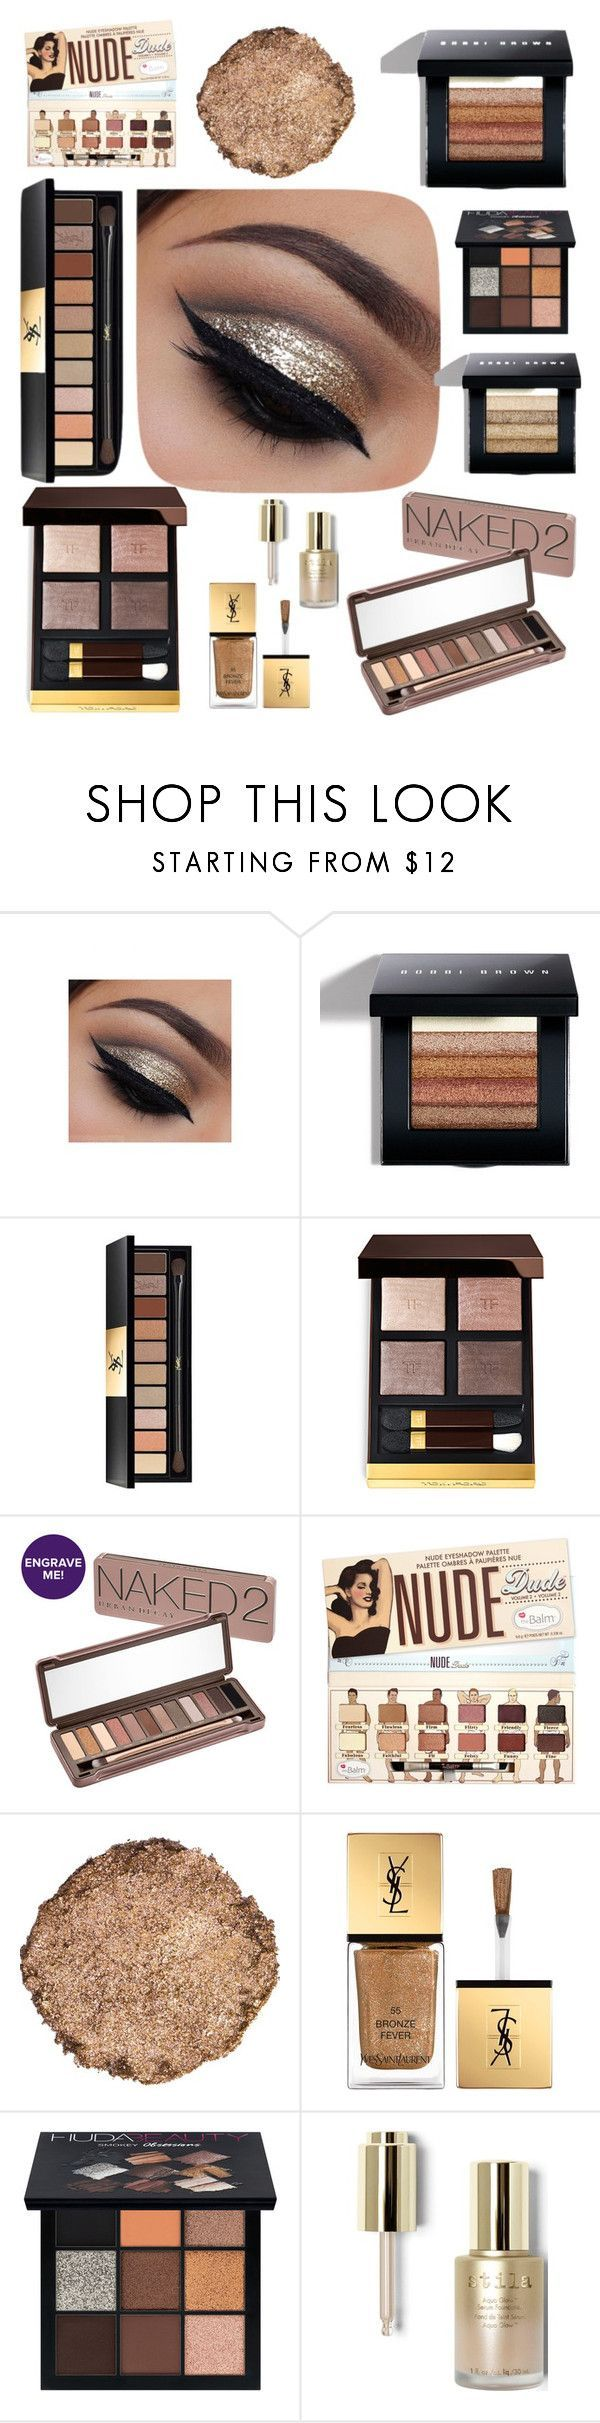 Get The Look: Glitter Smokey Eye by rosegoldpearls on Polyvore featuring beauty products by Urban Decay, Tom Ford, Yves Saint Laurent, Bobbi Brown Cosmetics, Illamasqua, Stila and Huda Beauty